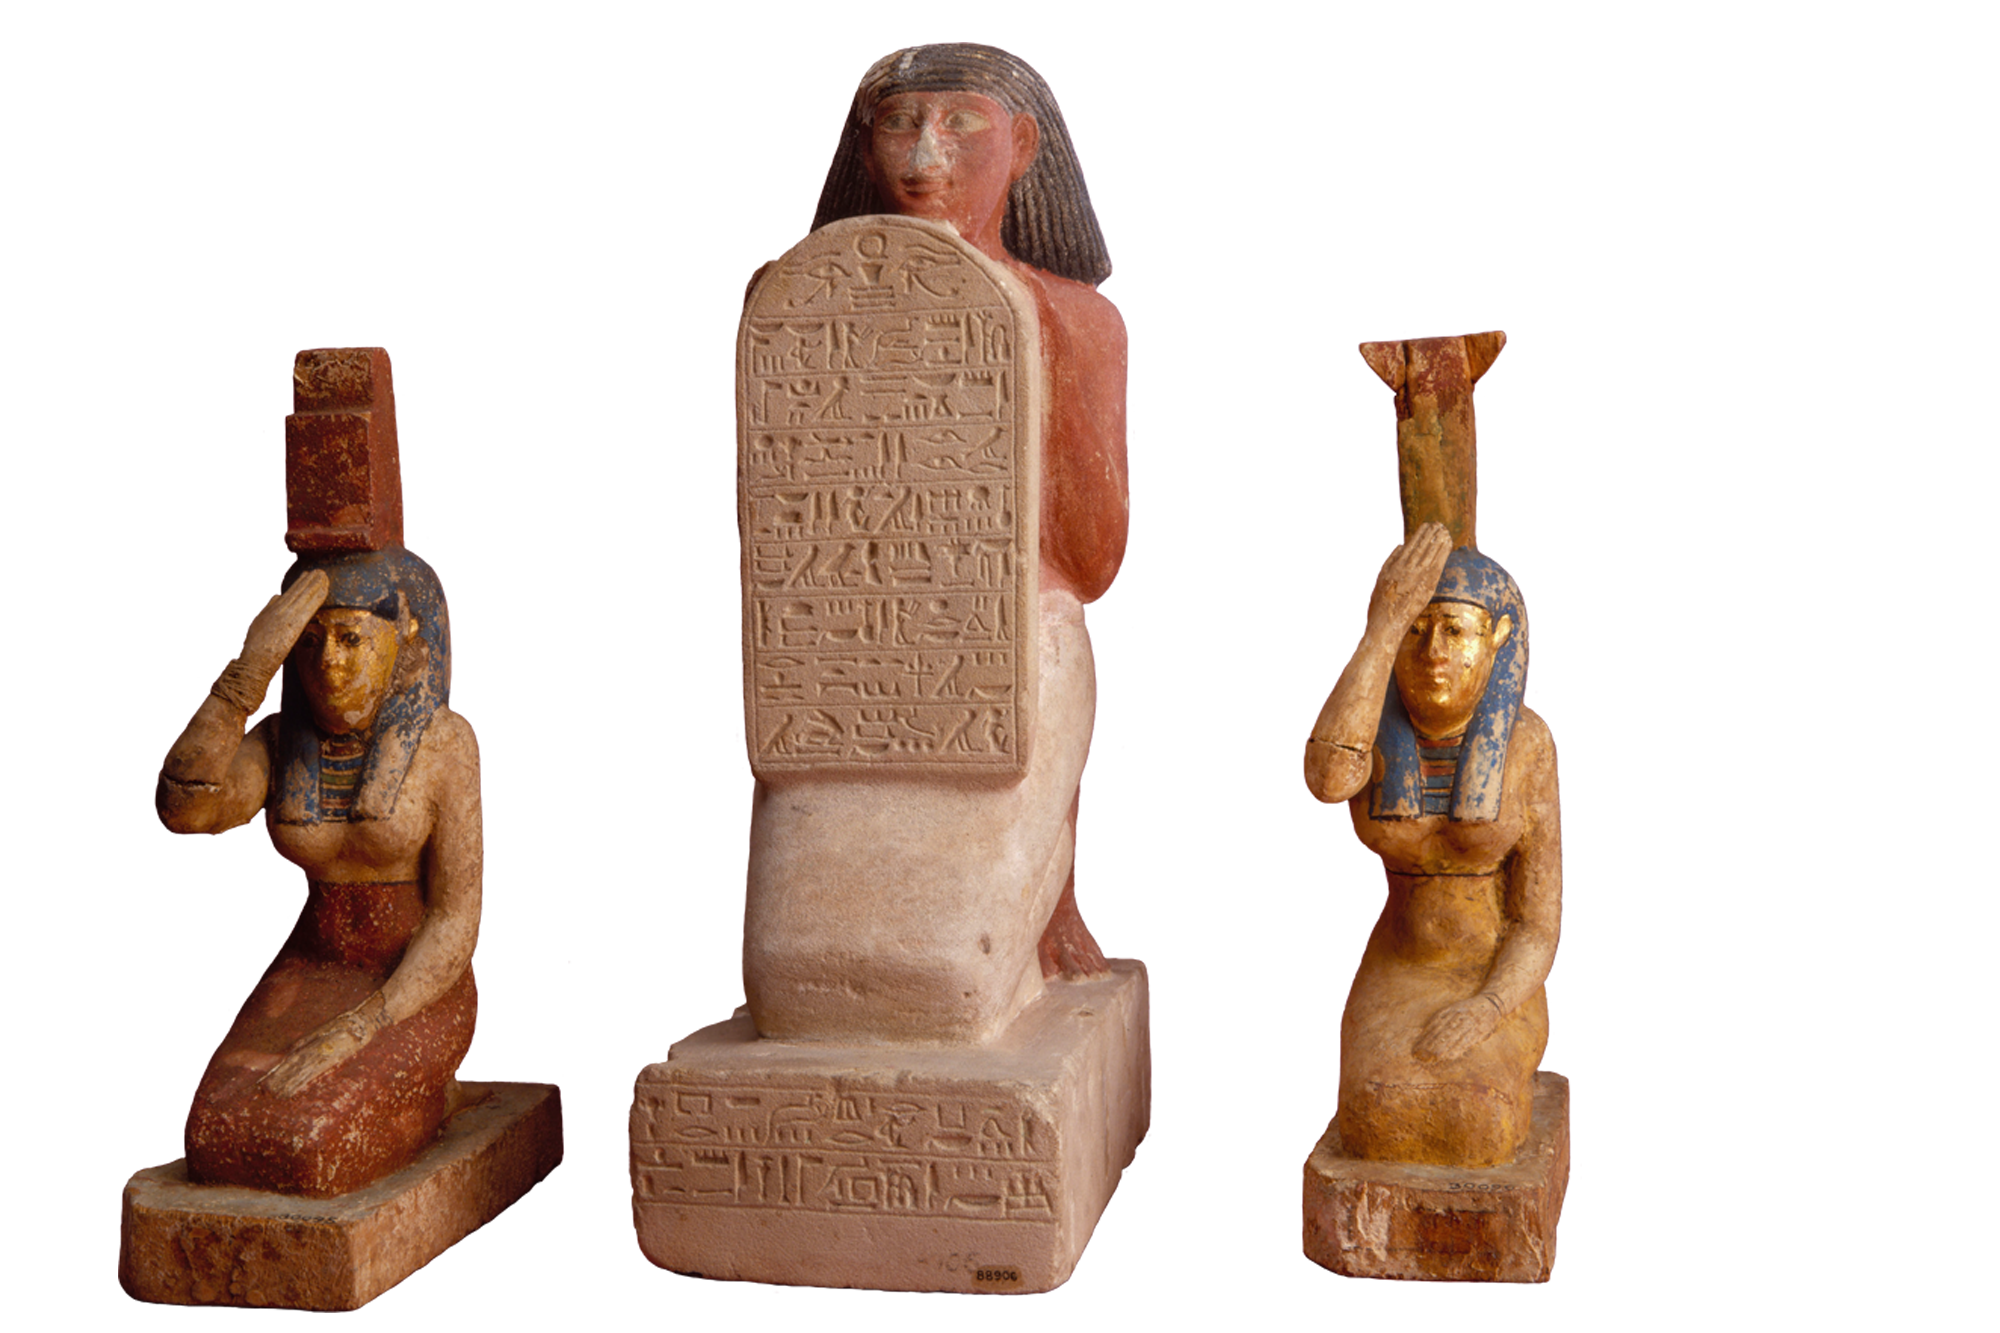 Three small Egyptian statues, the center holding a stone hieroglyphic text.